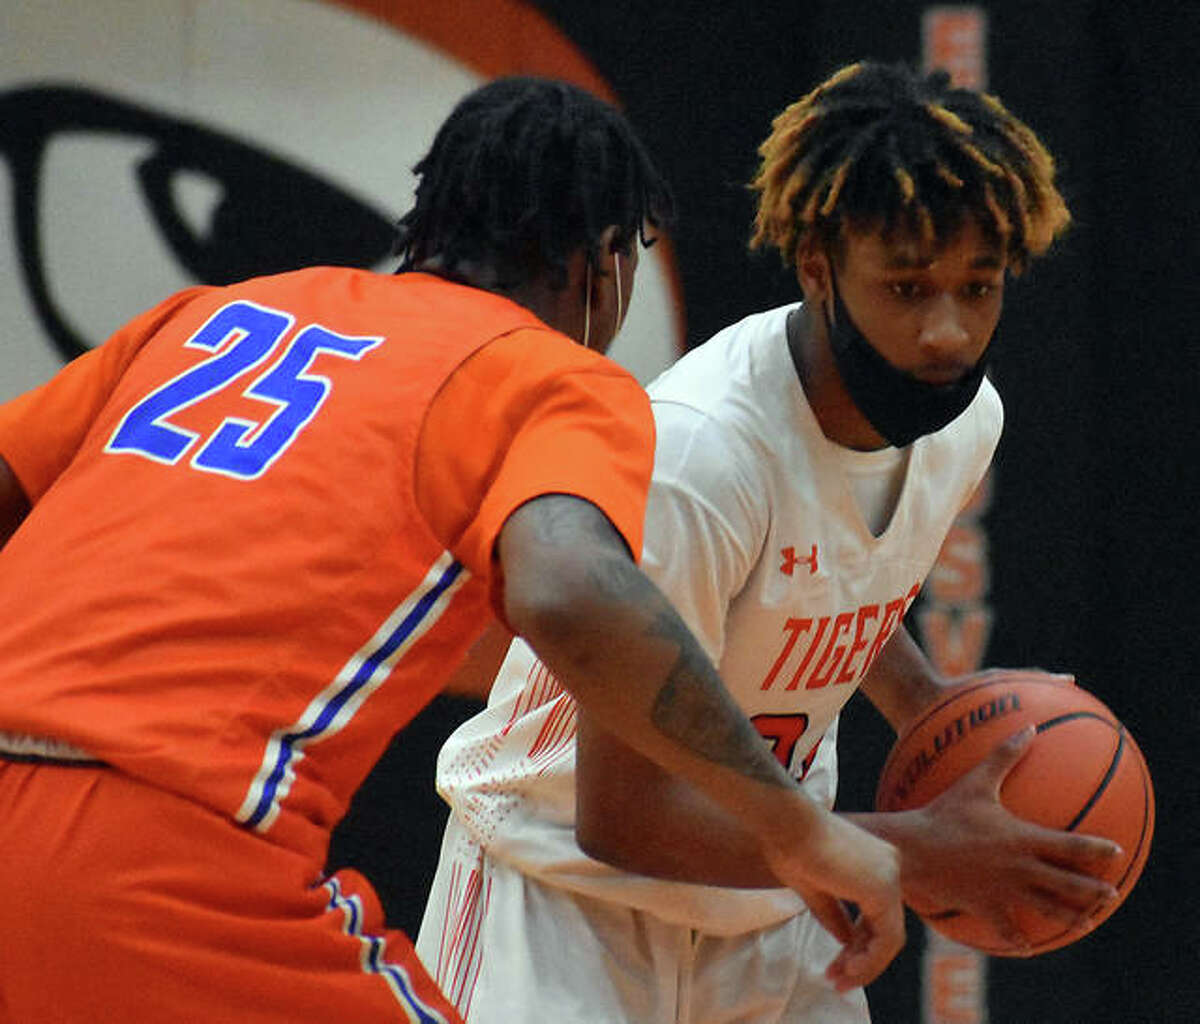 Edwardsville's Jalil Roundtree shields the ball away from an East St. Louis defender during the third quarter of Saturday's game in Edwardsville.